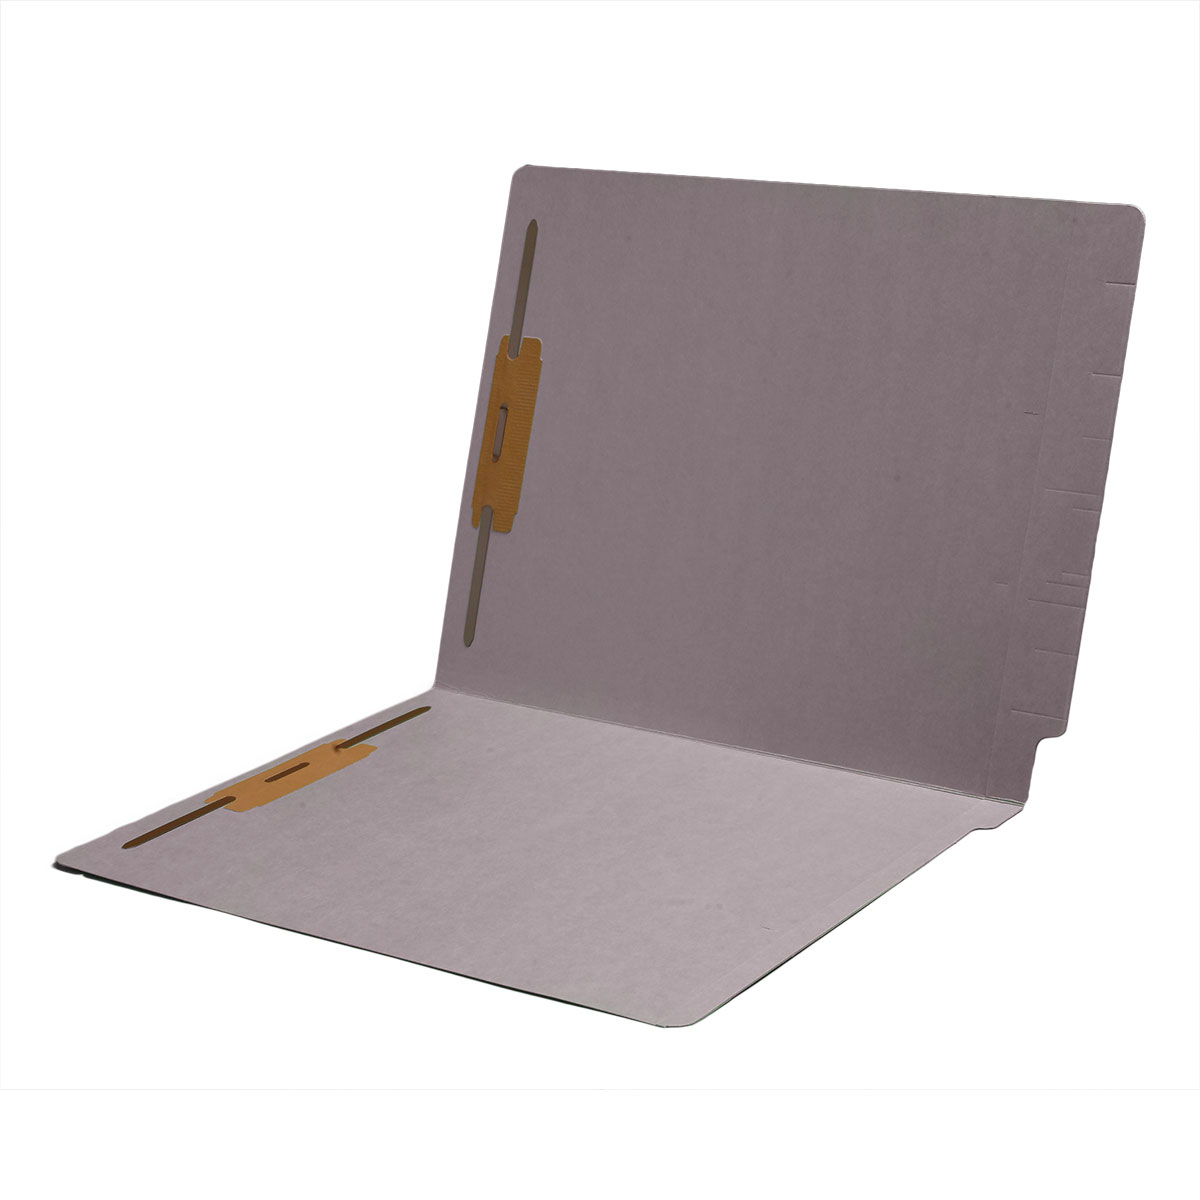 S-1502-GRY - 11 pt Color Folders, Full Cut 2-Ply End Tab, Letter Size, Fasteners Pos #1 & #3, Gray (Box of 50)